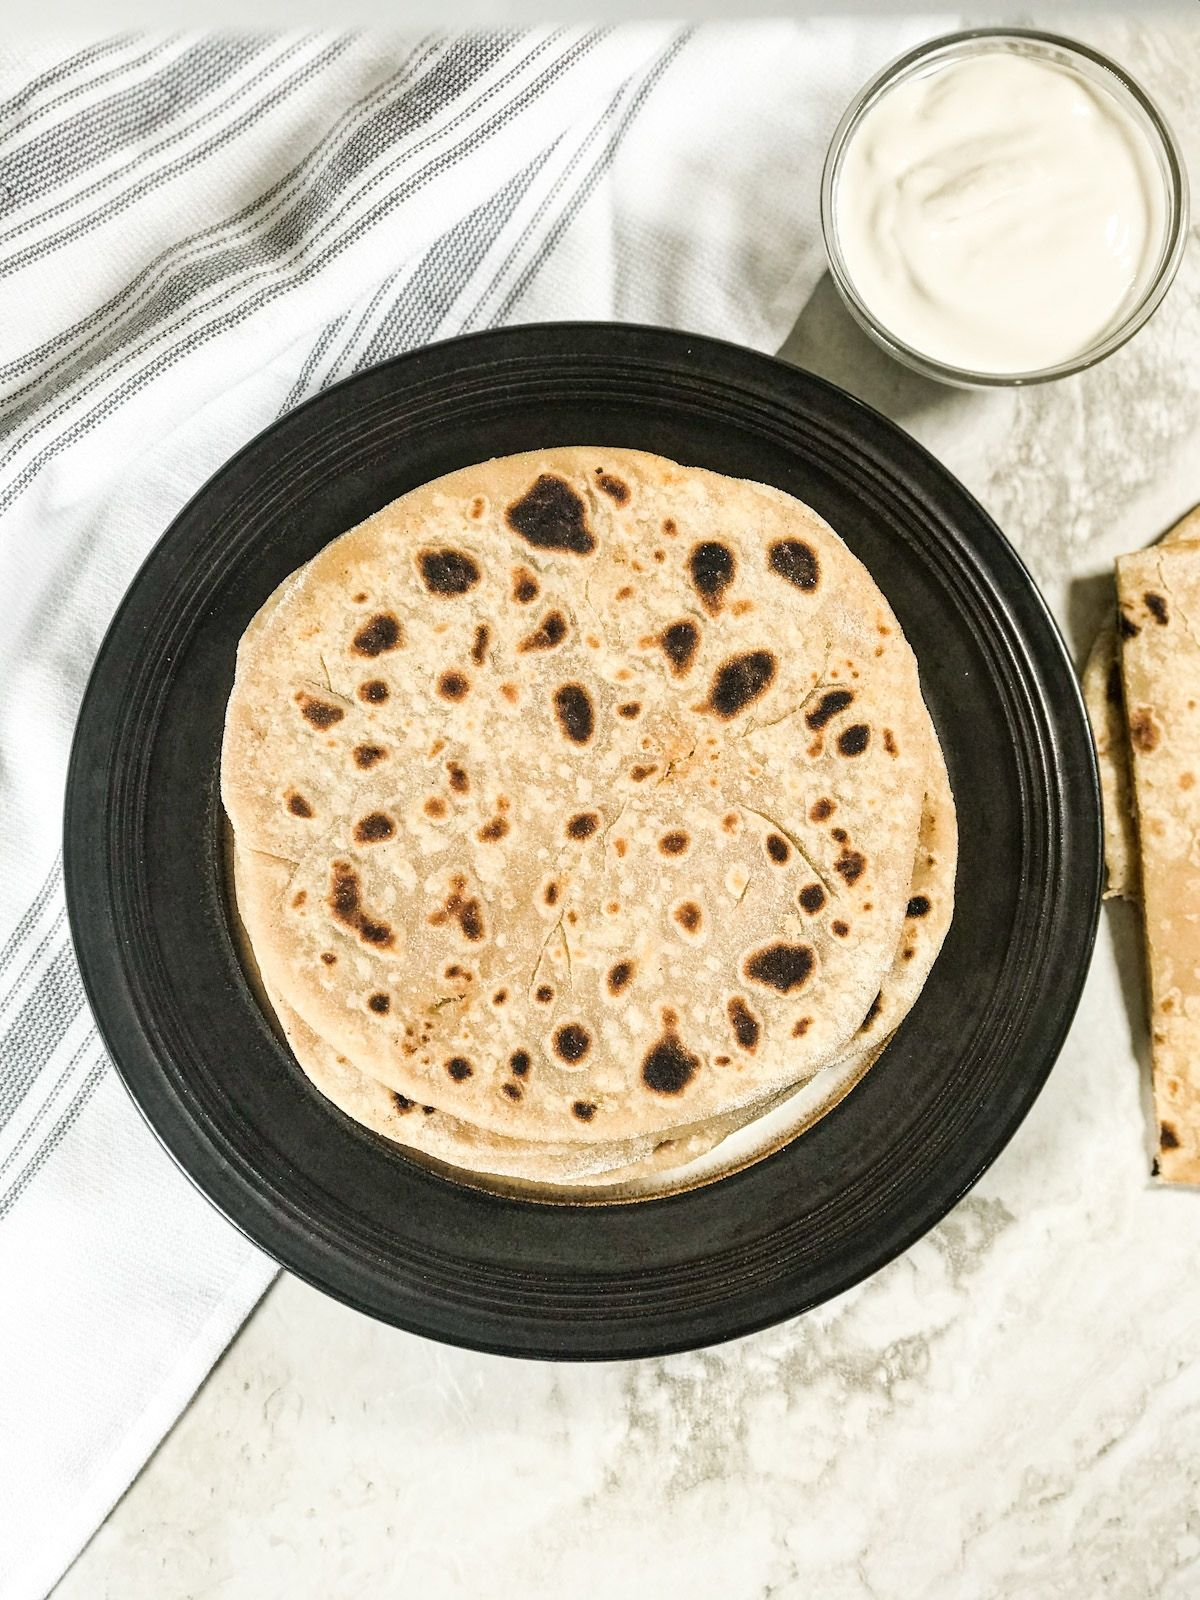 A plate of gobi paratha with side of coconut milk yogurt is on the white surface